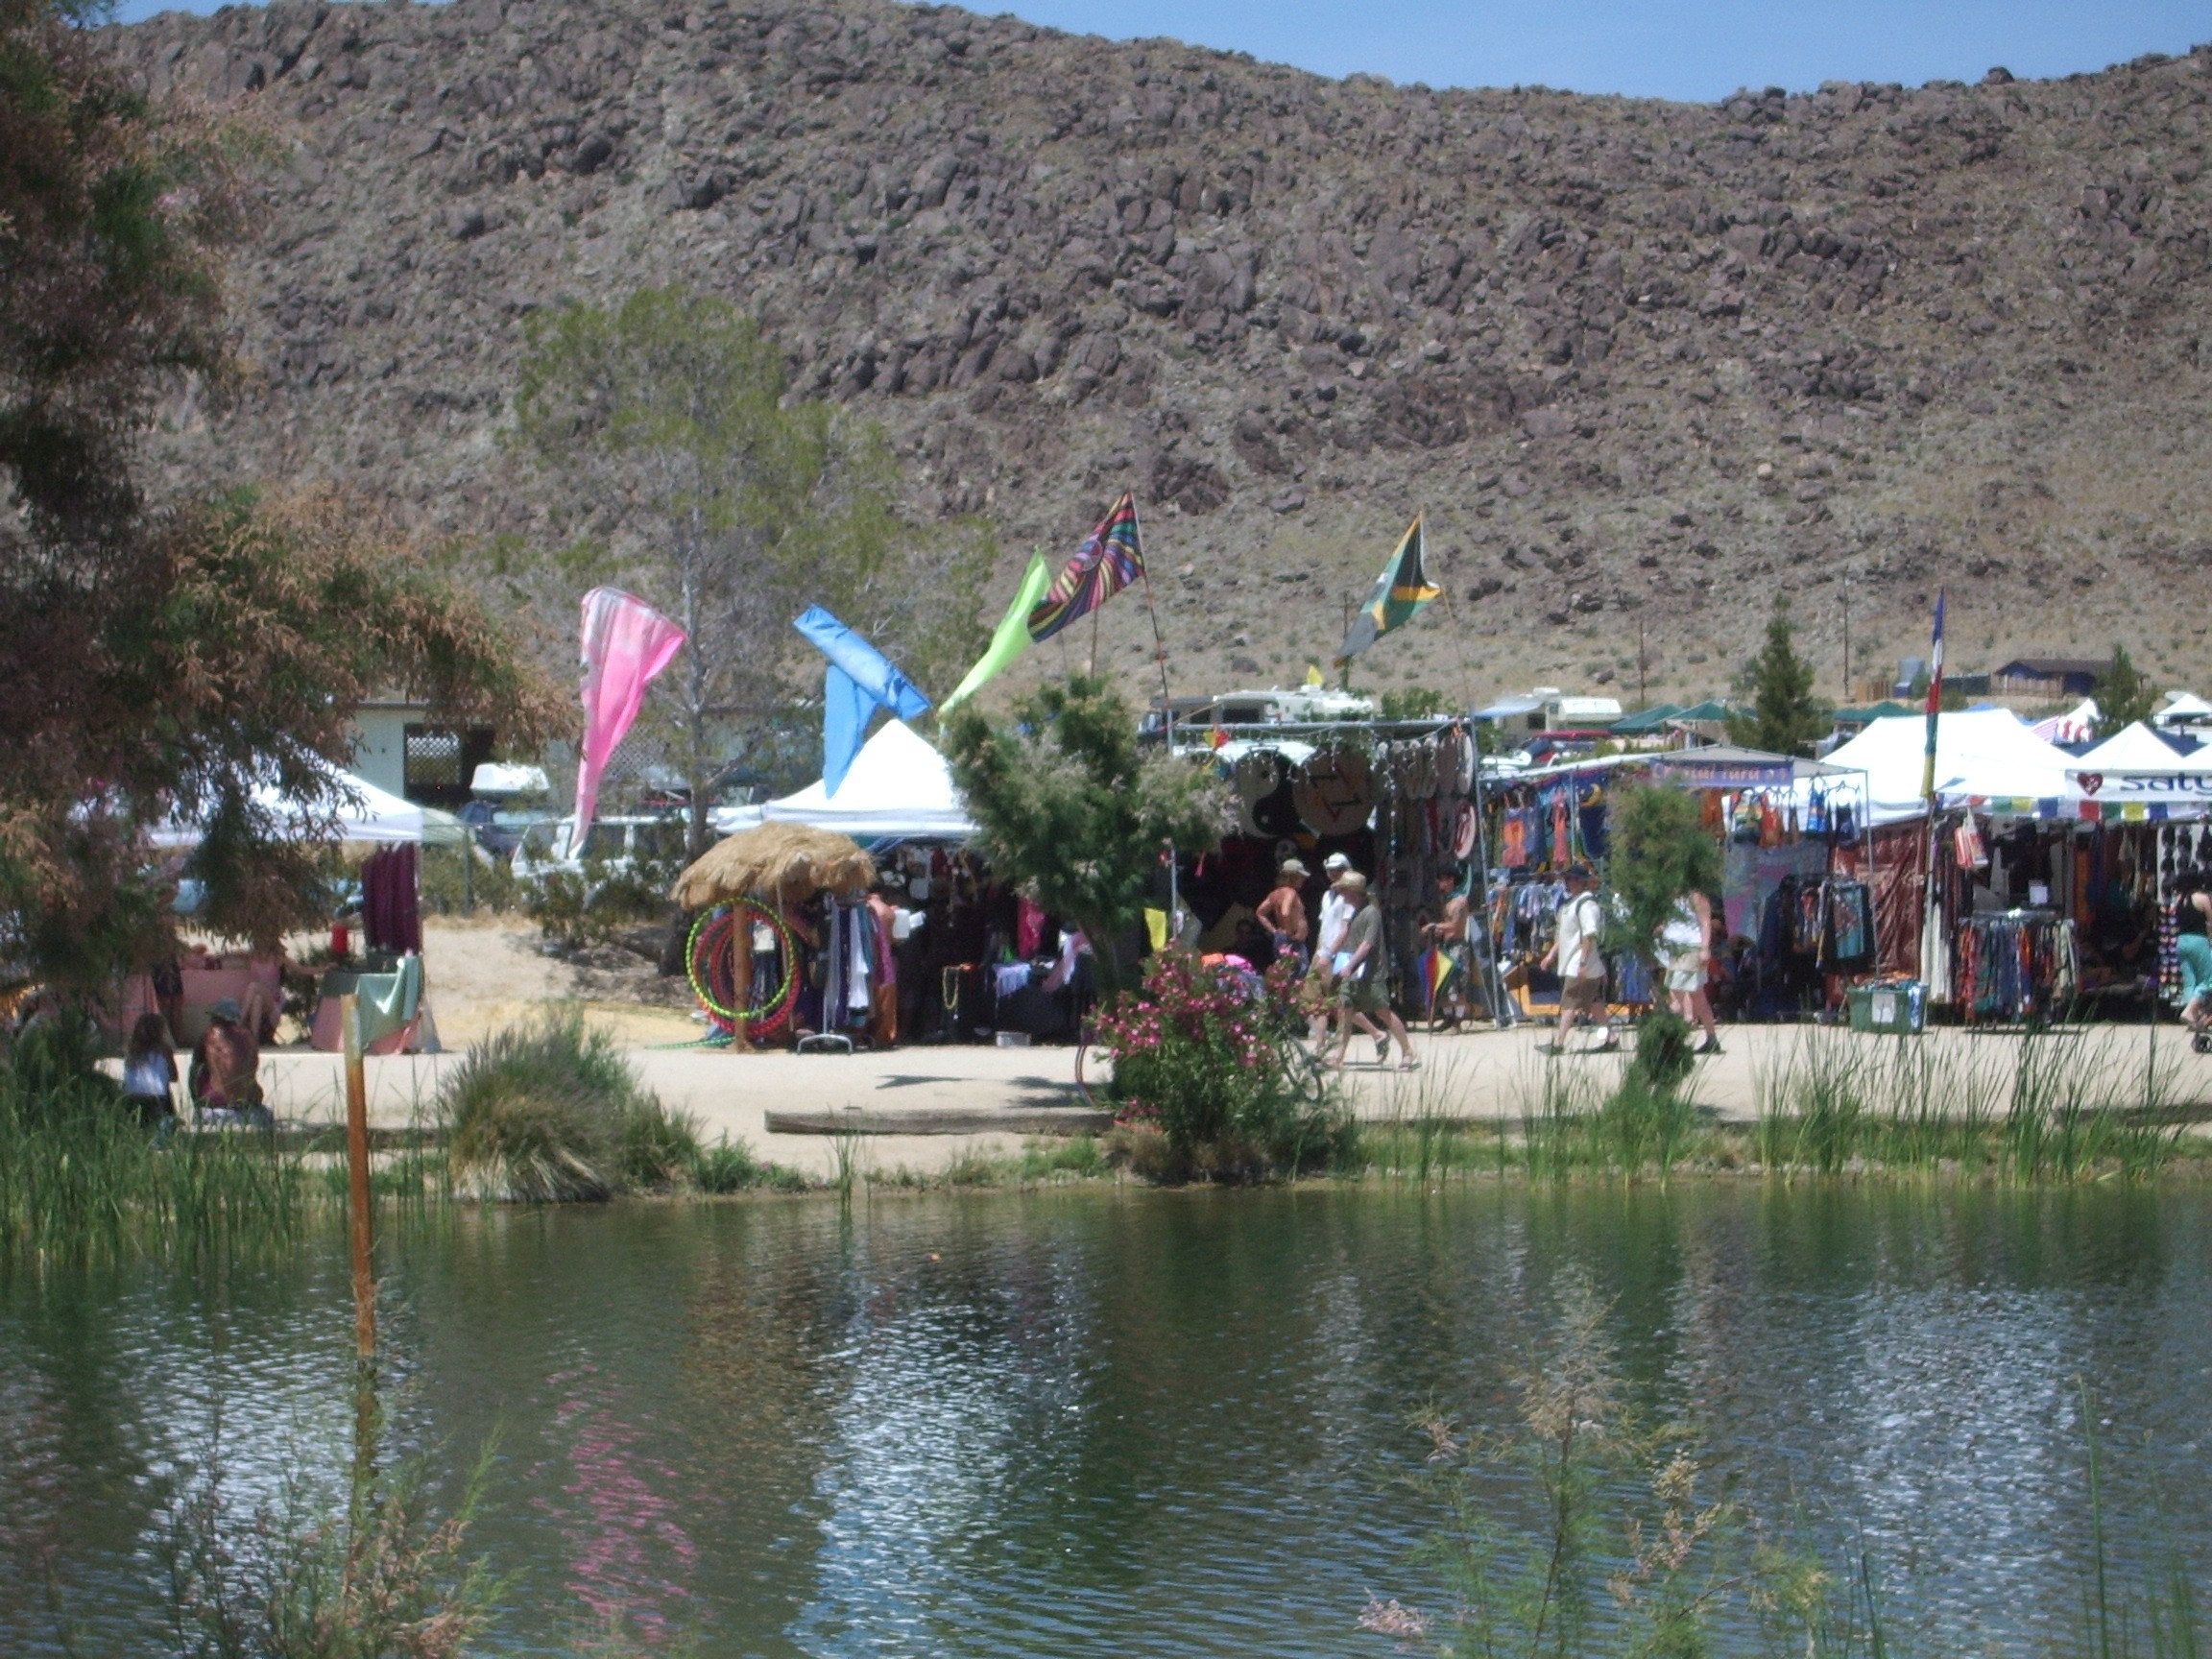 4th Annual Joshua Tree Music Festival To Be Held May 19 21